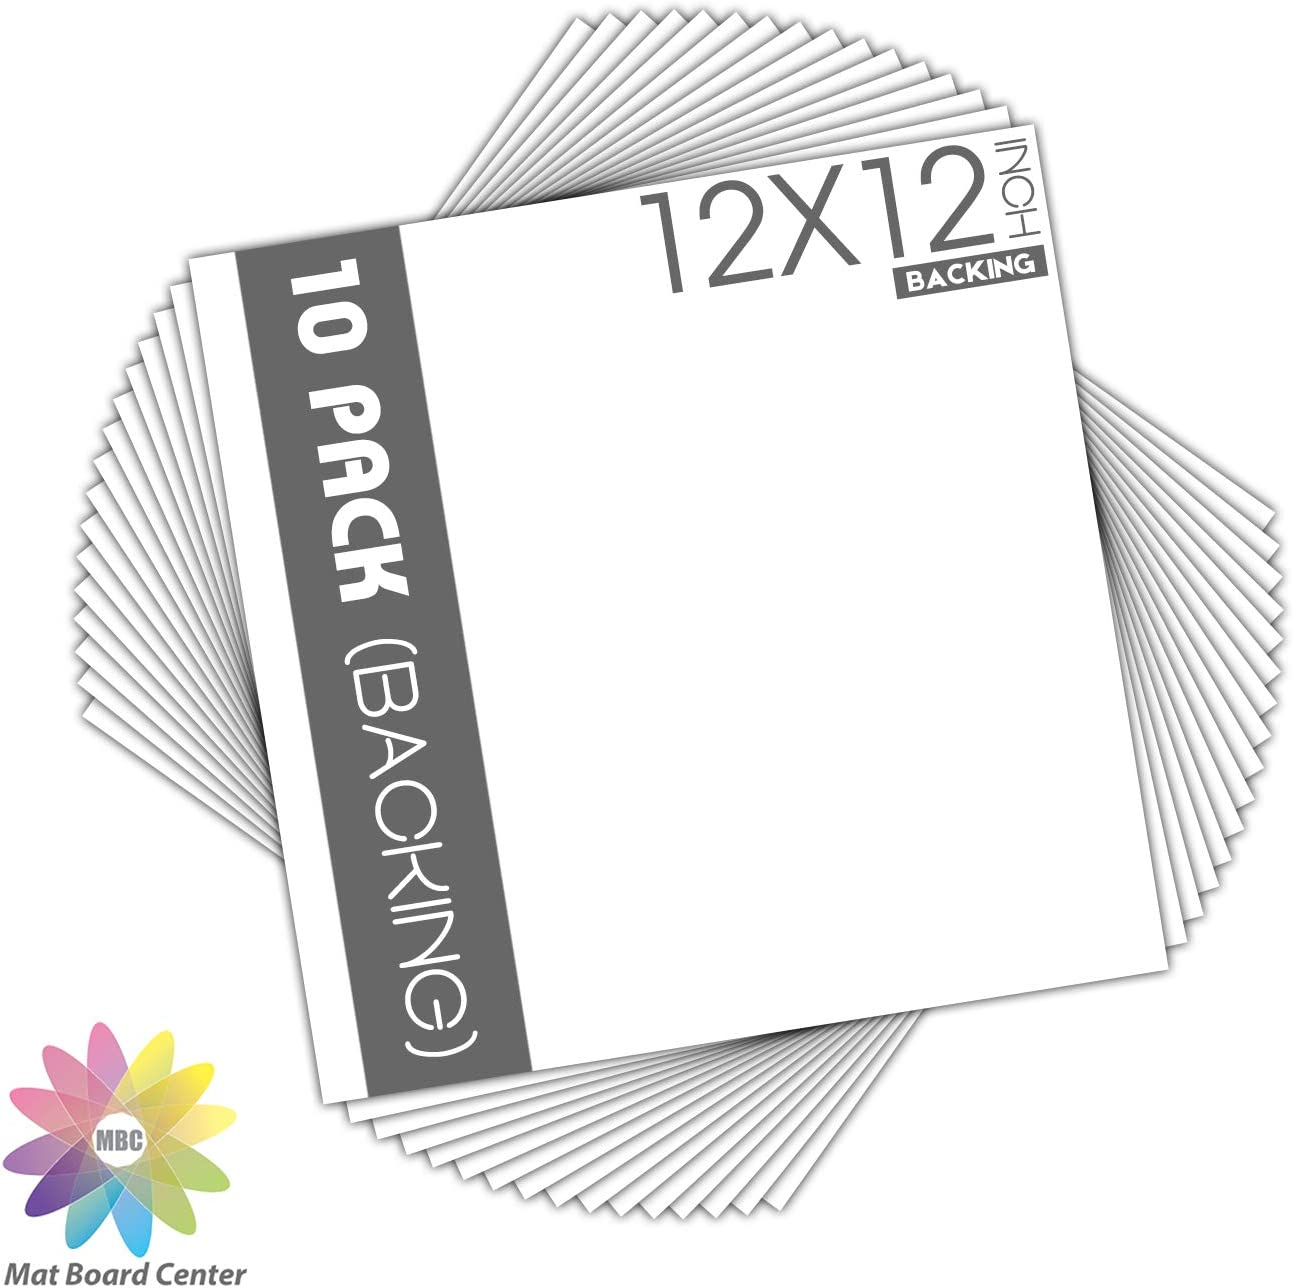 White Backing Boards 10 Pack Photos 11x14 Prints Full Sheet Mat Board Center Prints and More for Art